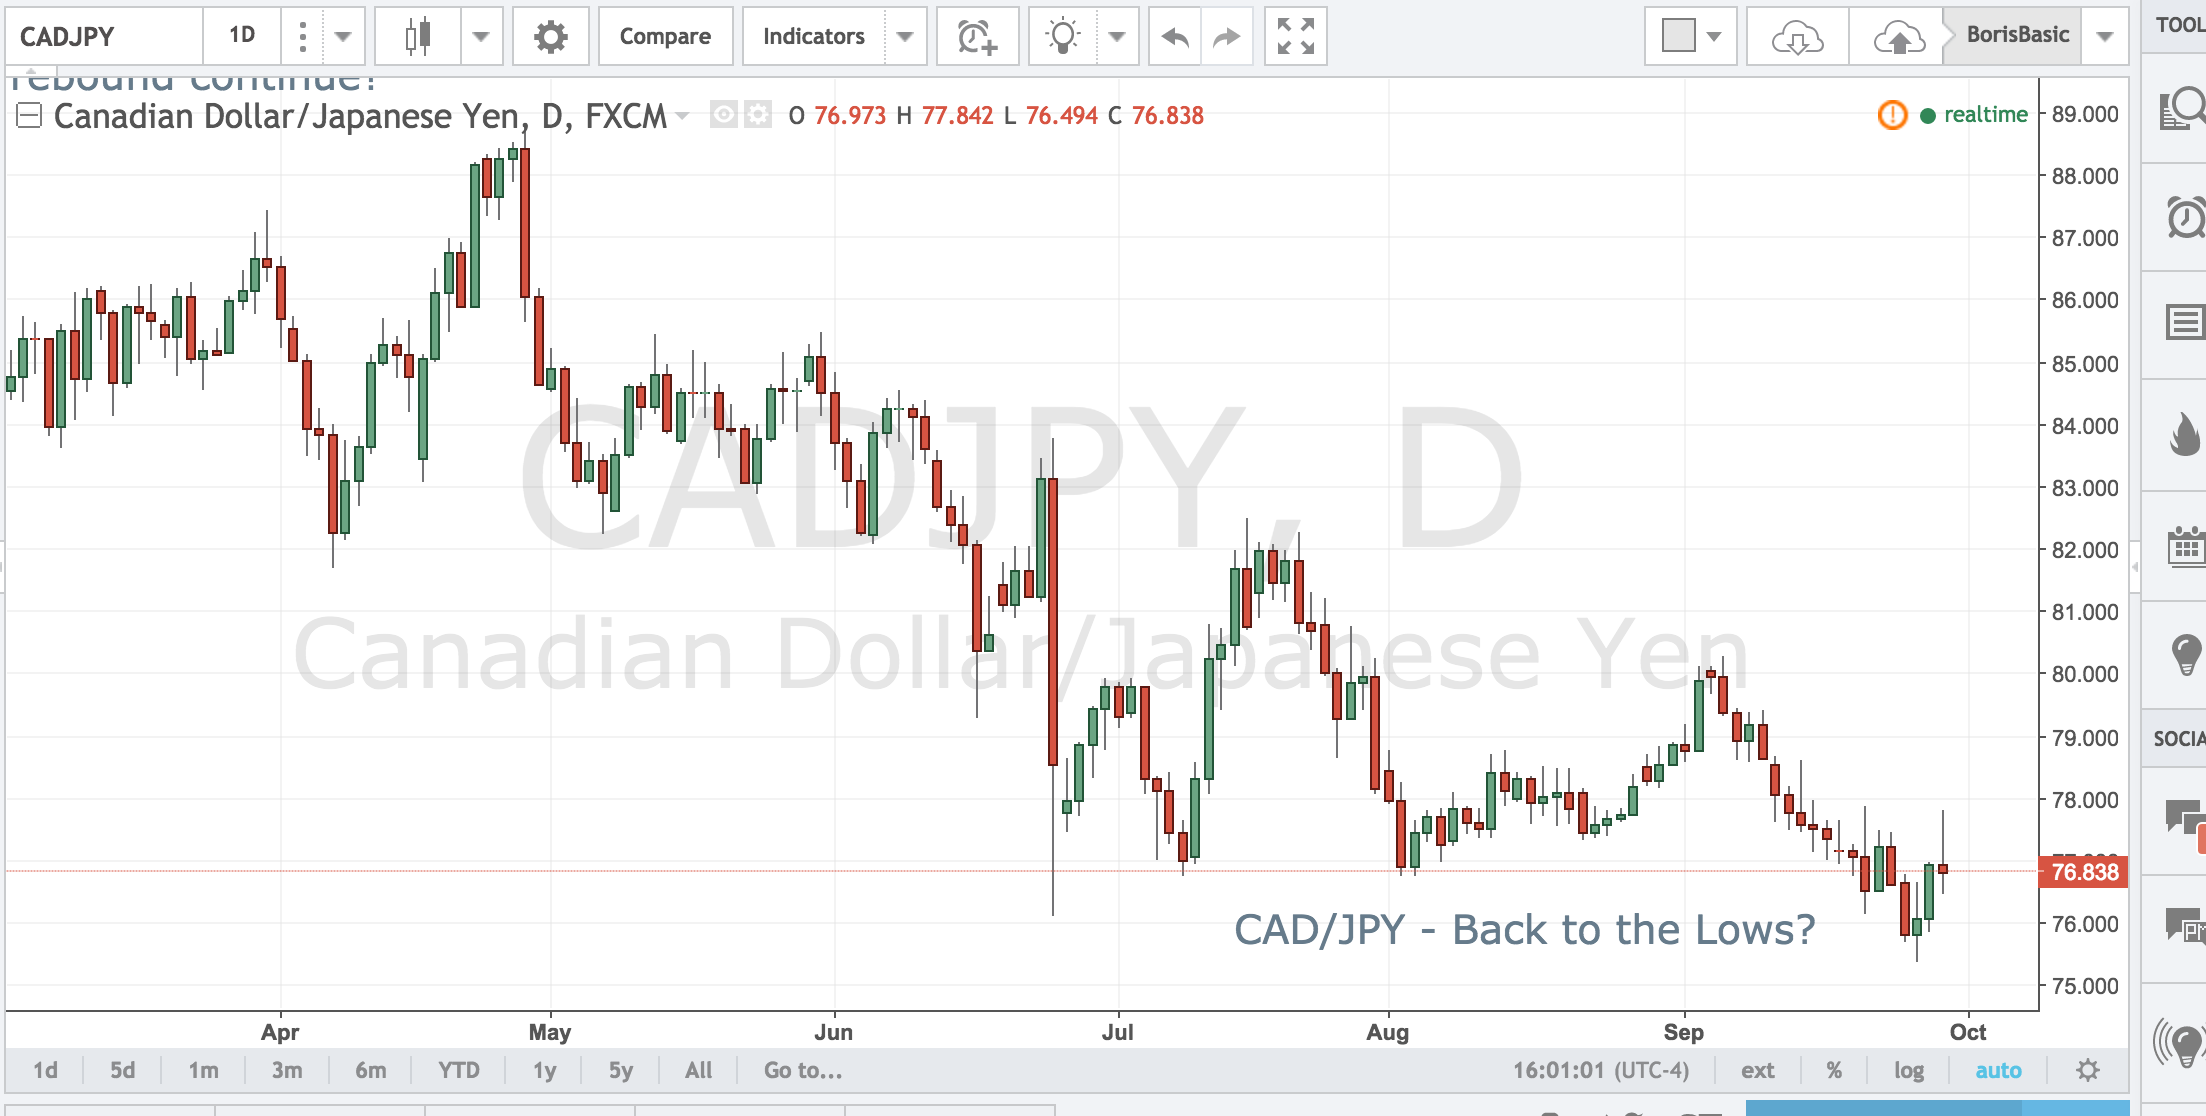 CADJPY – Back to the Lows?